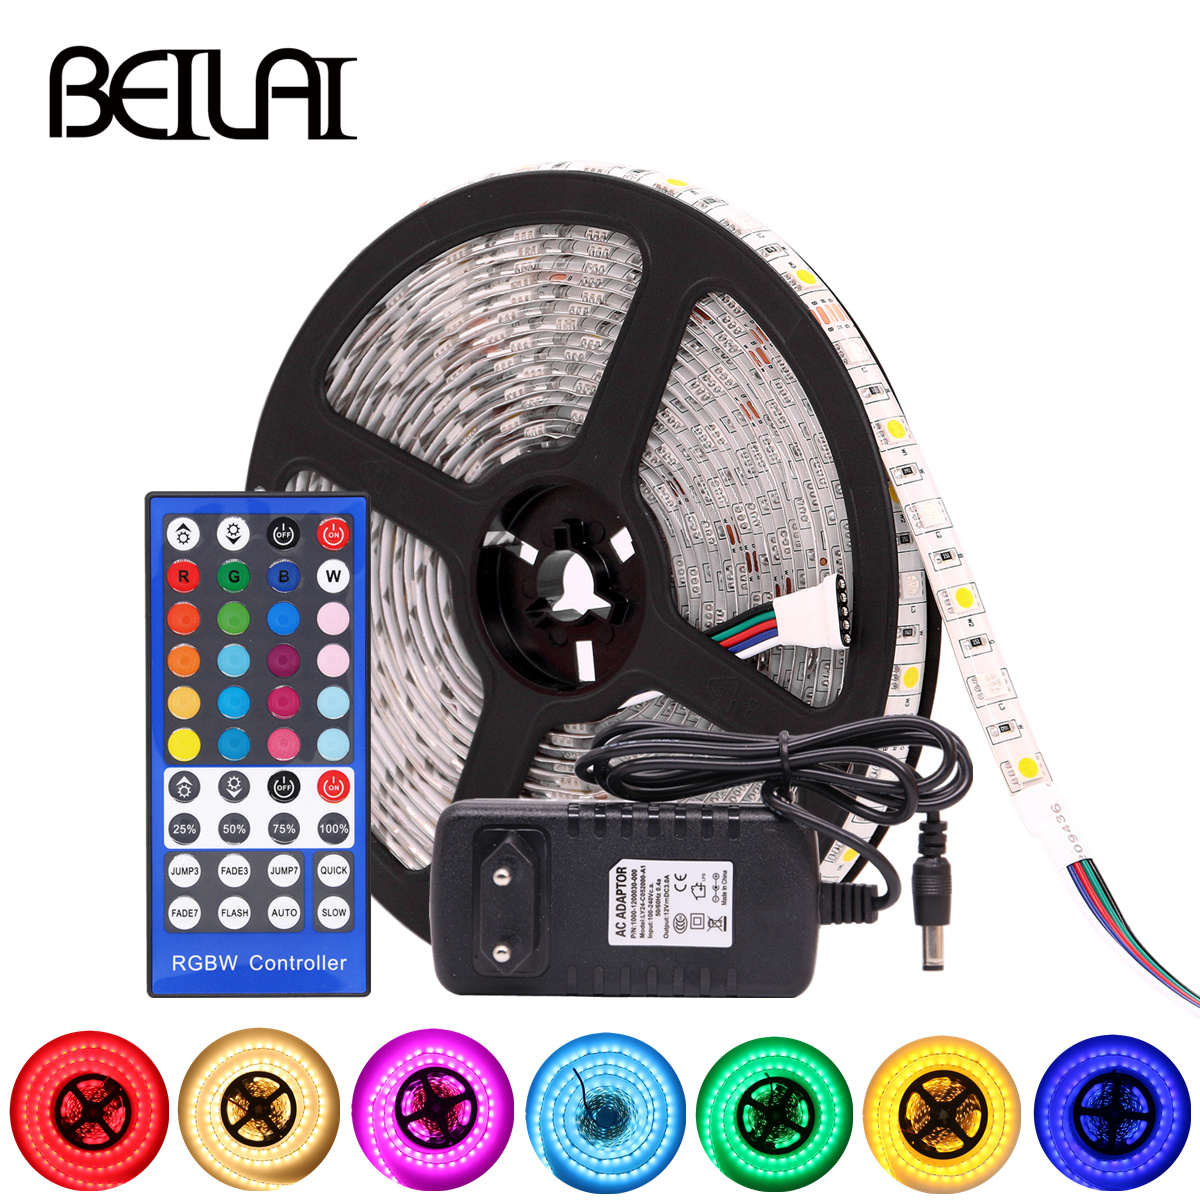 BEILAI SMD 5050 RGB LED Strip Waterproof DC 12V 5M 300LED RGBW RGBWW LED Light Strips Flexible with 3A Power and Remote Control beiyun smd 5050 rgb led strip 5m 300led not waterproof dc 12v led light strips flexible neon tape luz white warm white rgb